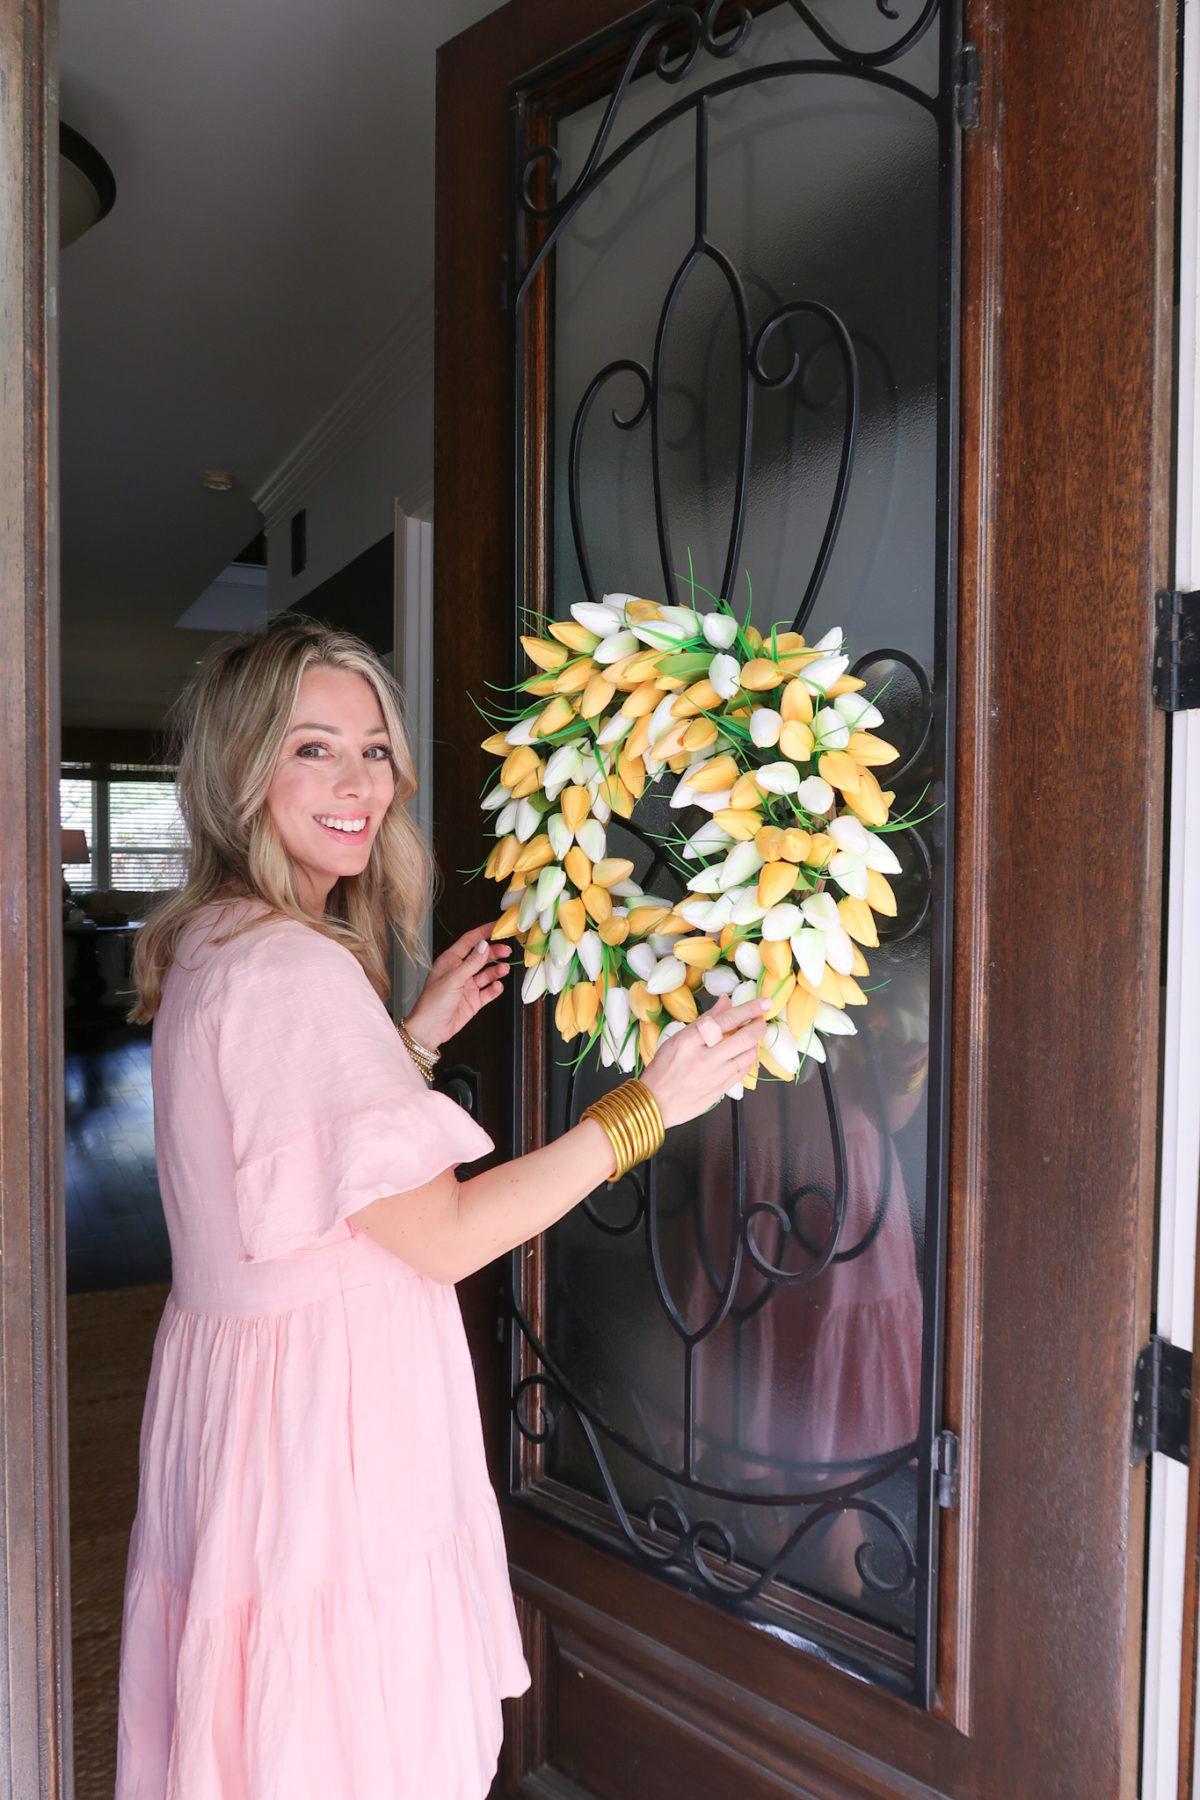 Easter Home, Tulip Wreath, Pink Dress